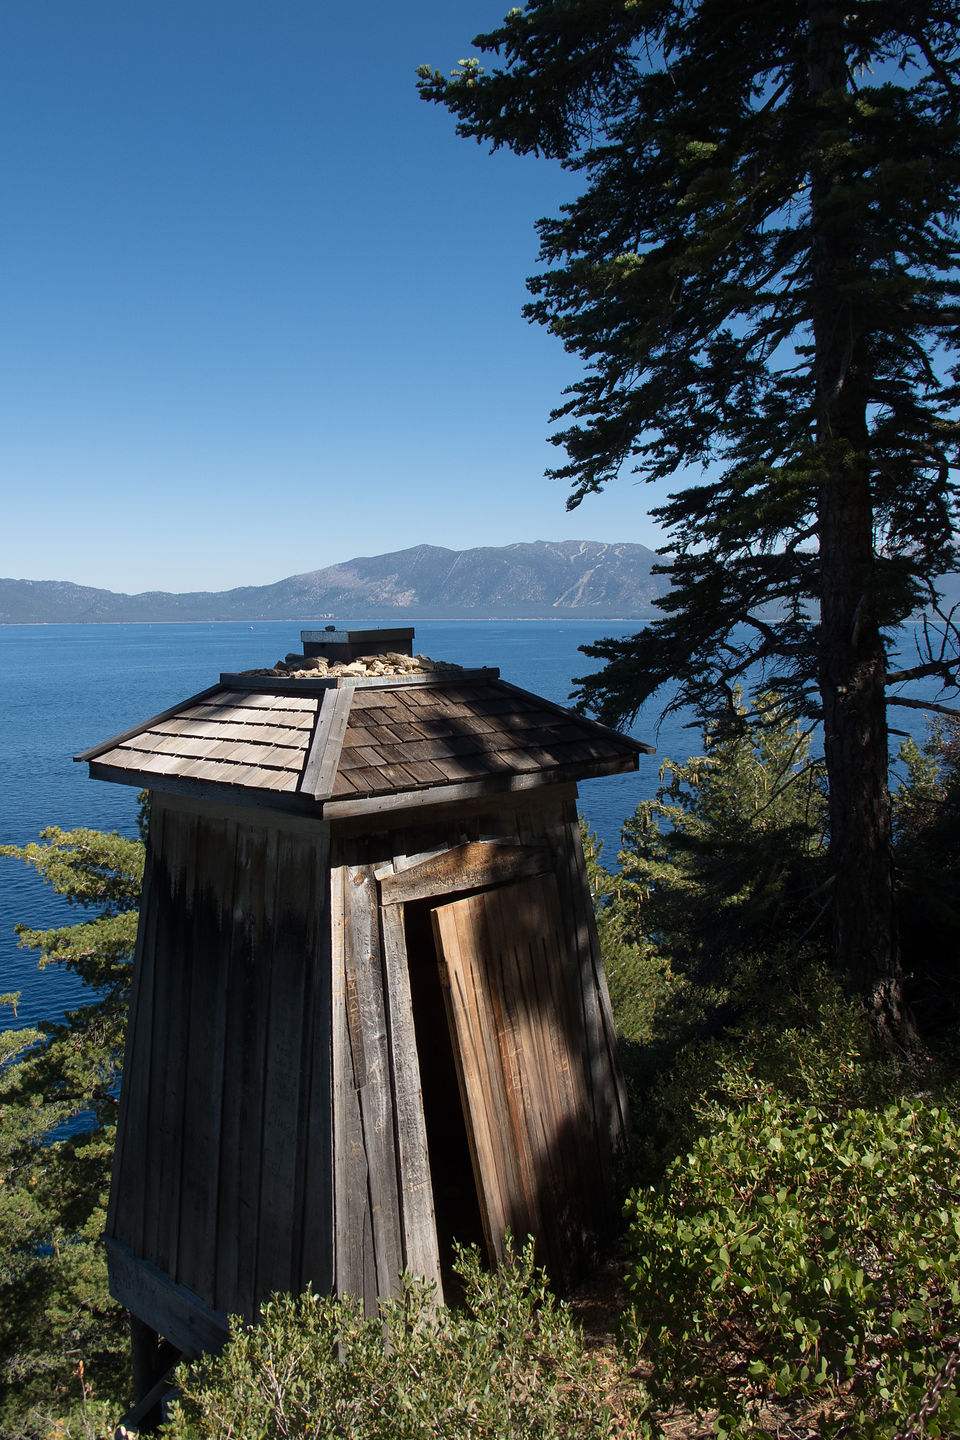 North Country Rv >> Lake Tahoe Old 1916 Lighthouse | Lolo's Extreme Cross Country RV Trips